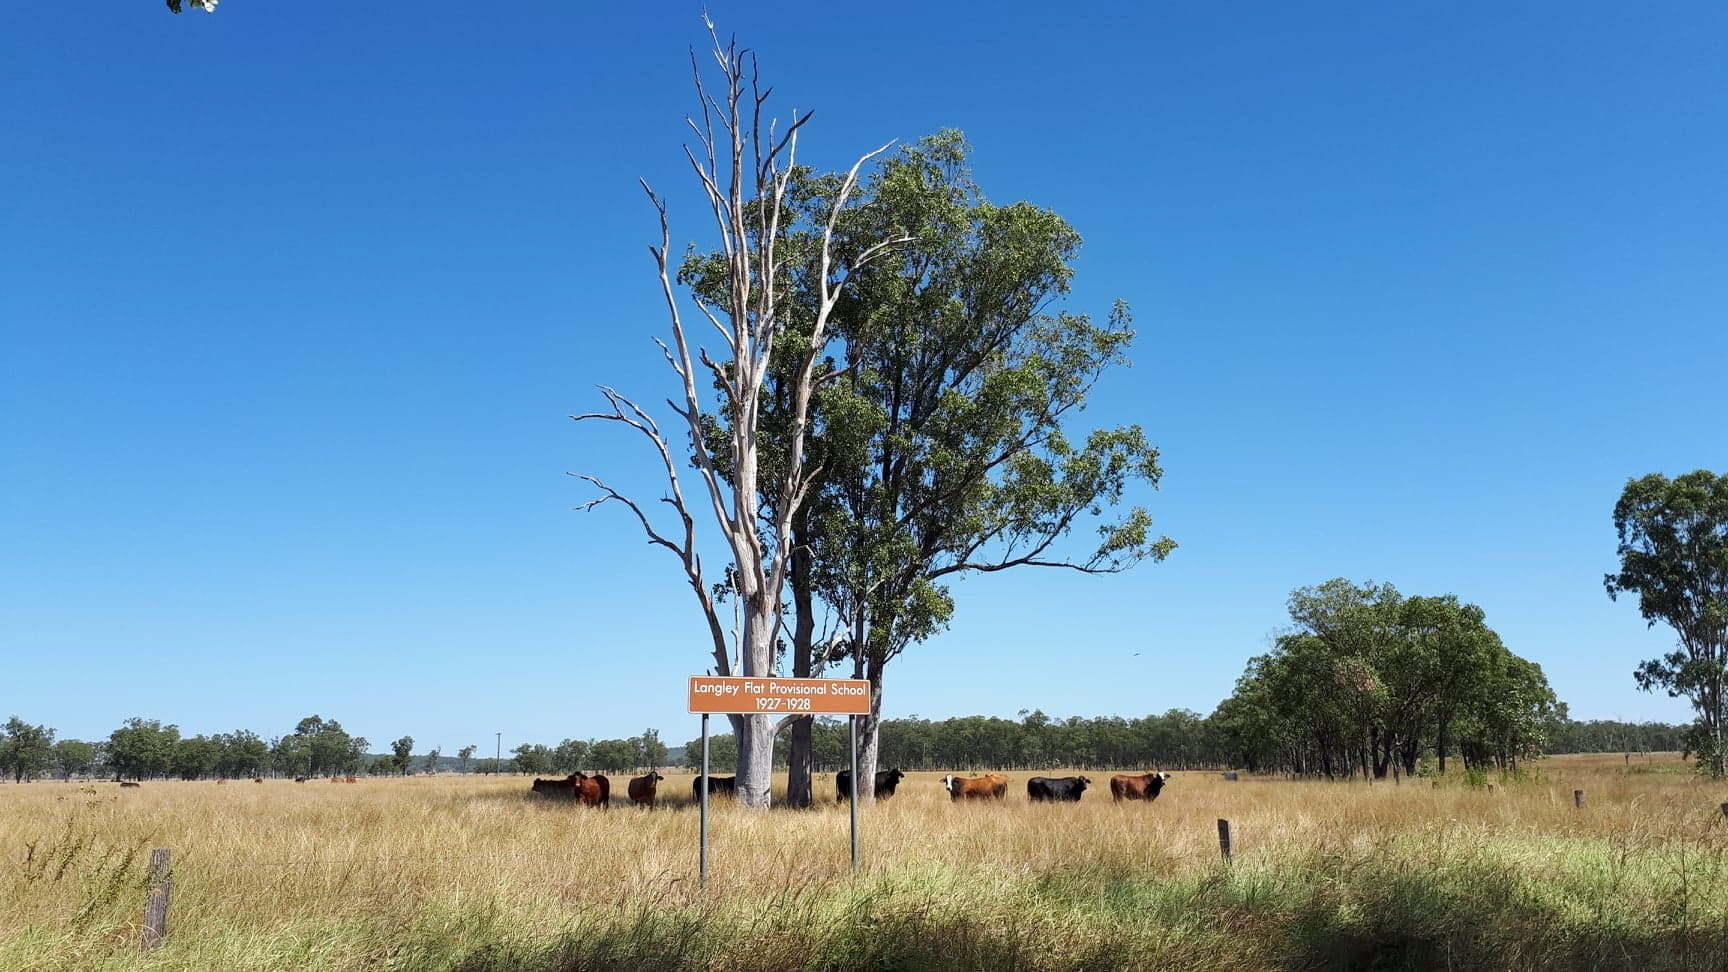 Paddock with tall trees in the centre and cattle around the trees, and a brown sign for Langley Flat Provisional School in front of them